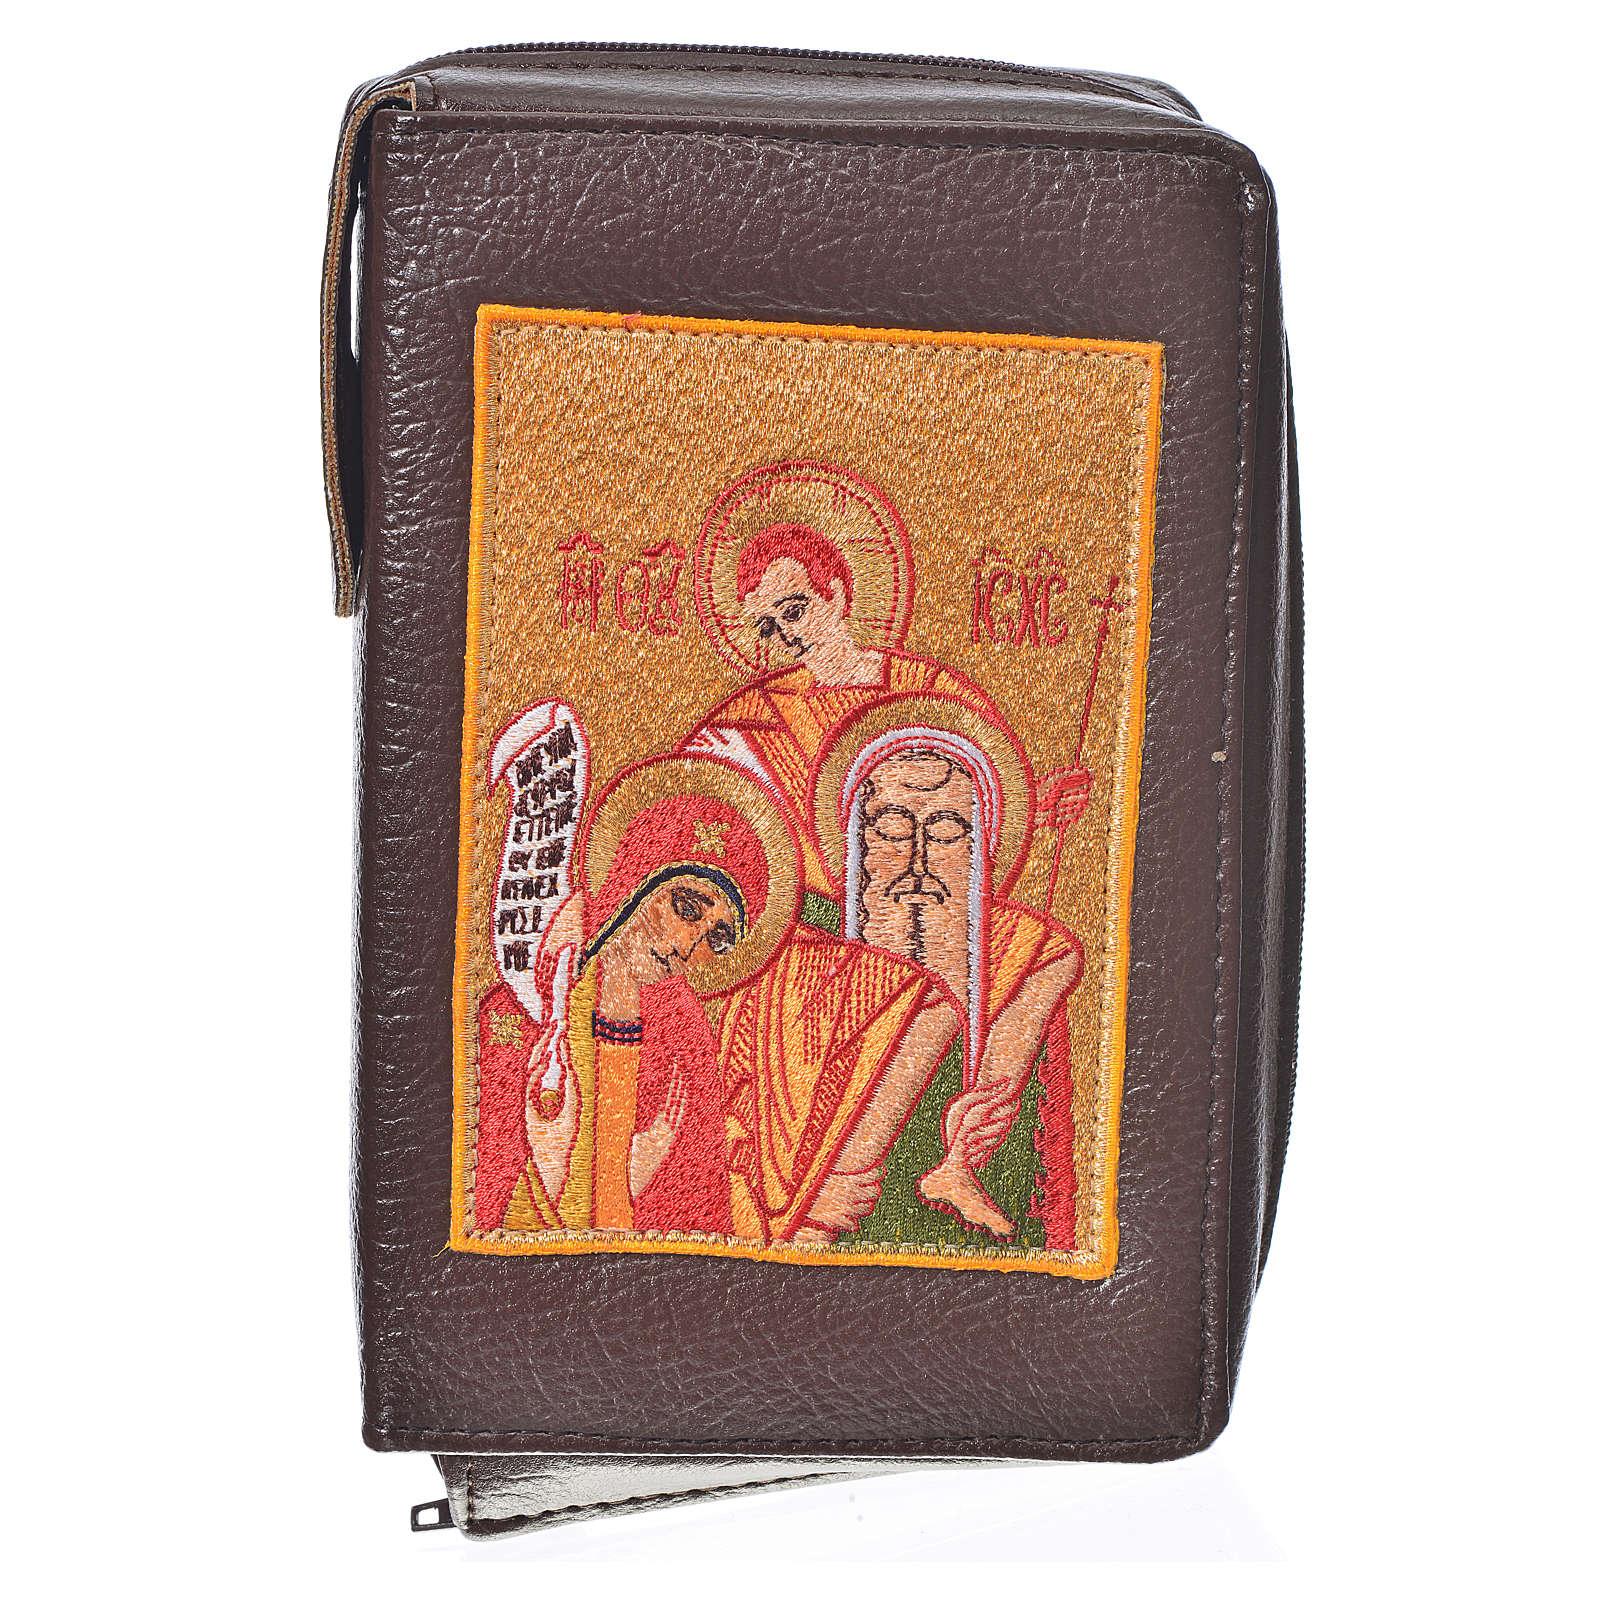 Ordinary Time III cover dark brown bonded leather Holy Family of Kiko 4